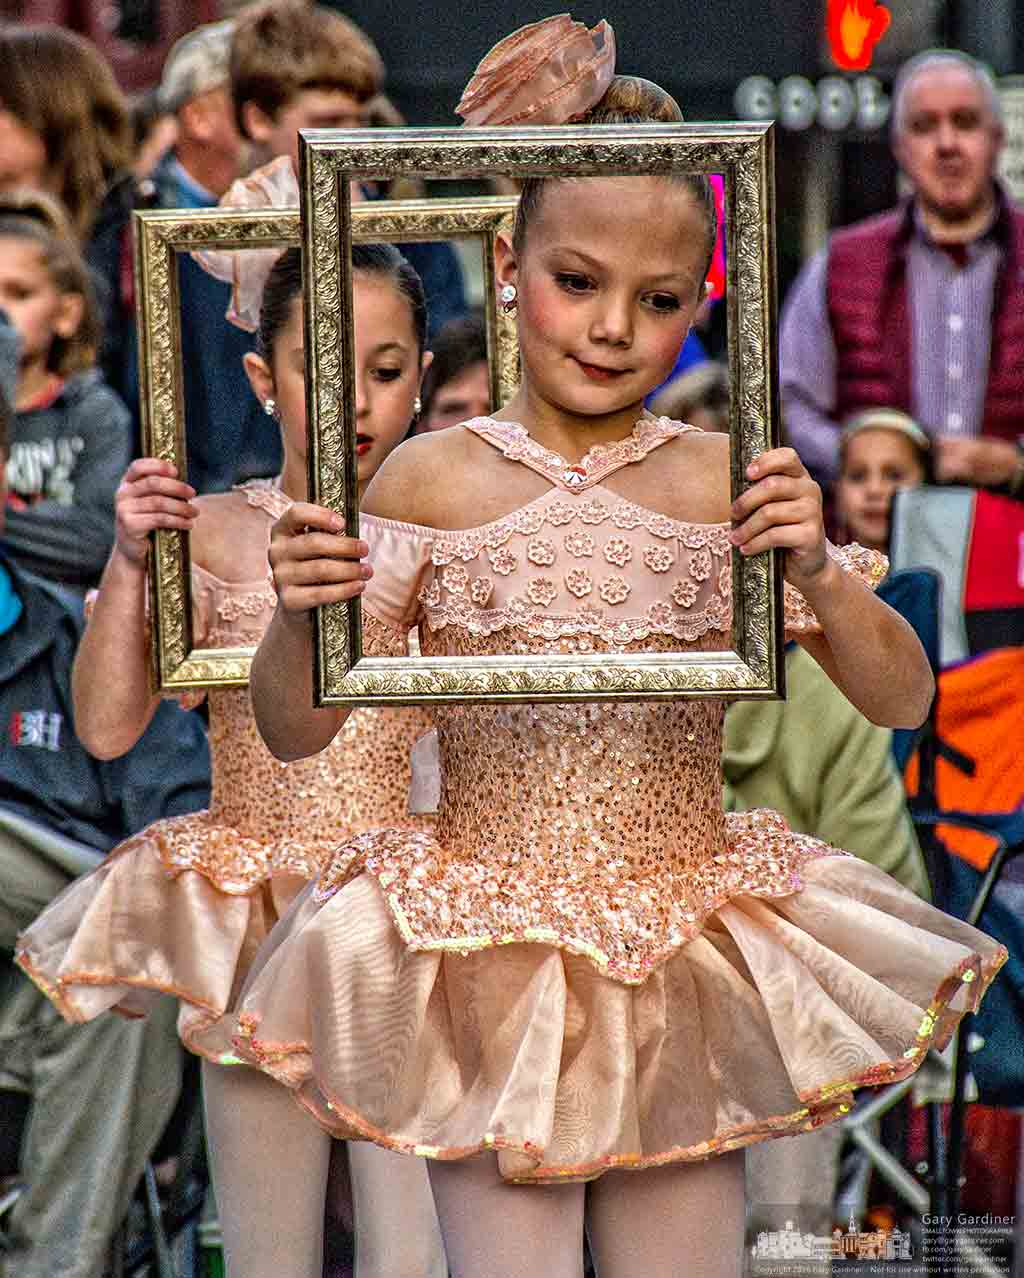 Generations dancers hold frames for props as they step onto the outdoor stage on College Ave. during Midnight Madness in Uptown Westerville. My Final Photo for Oct. 28, 2016.